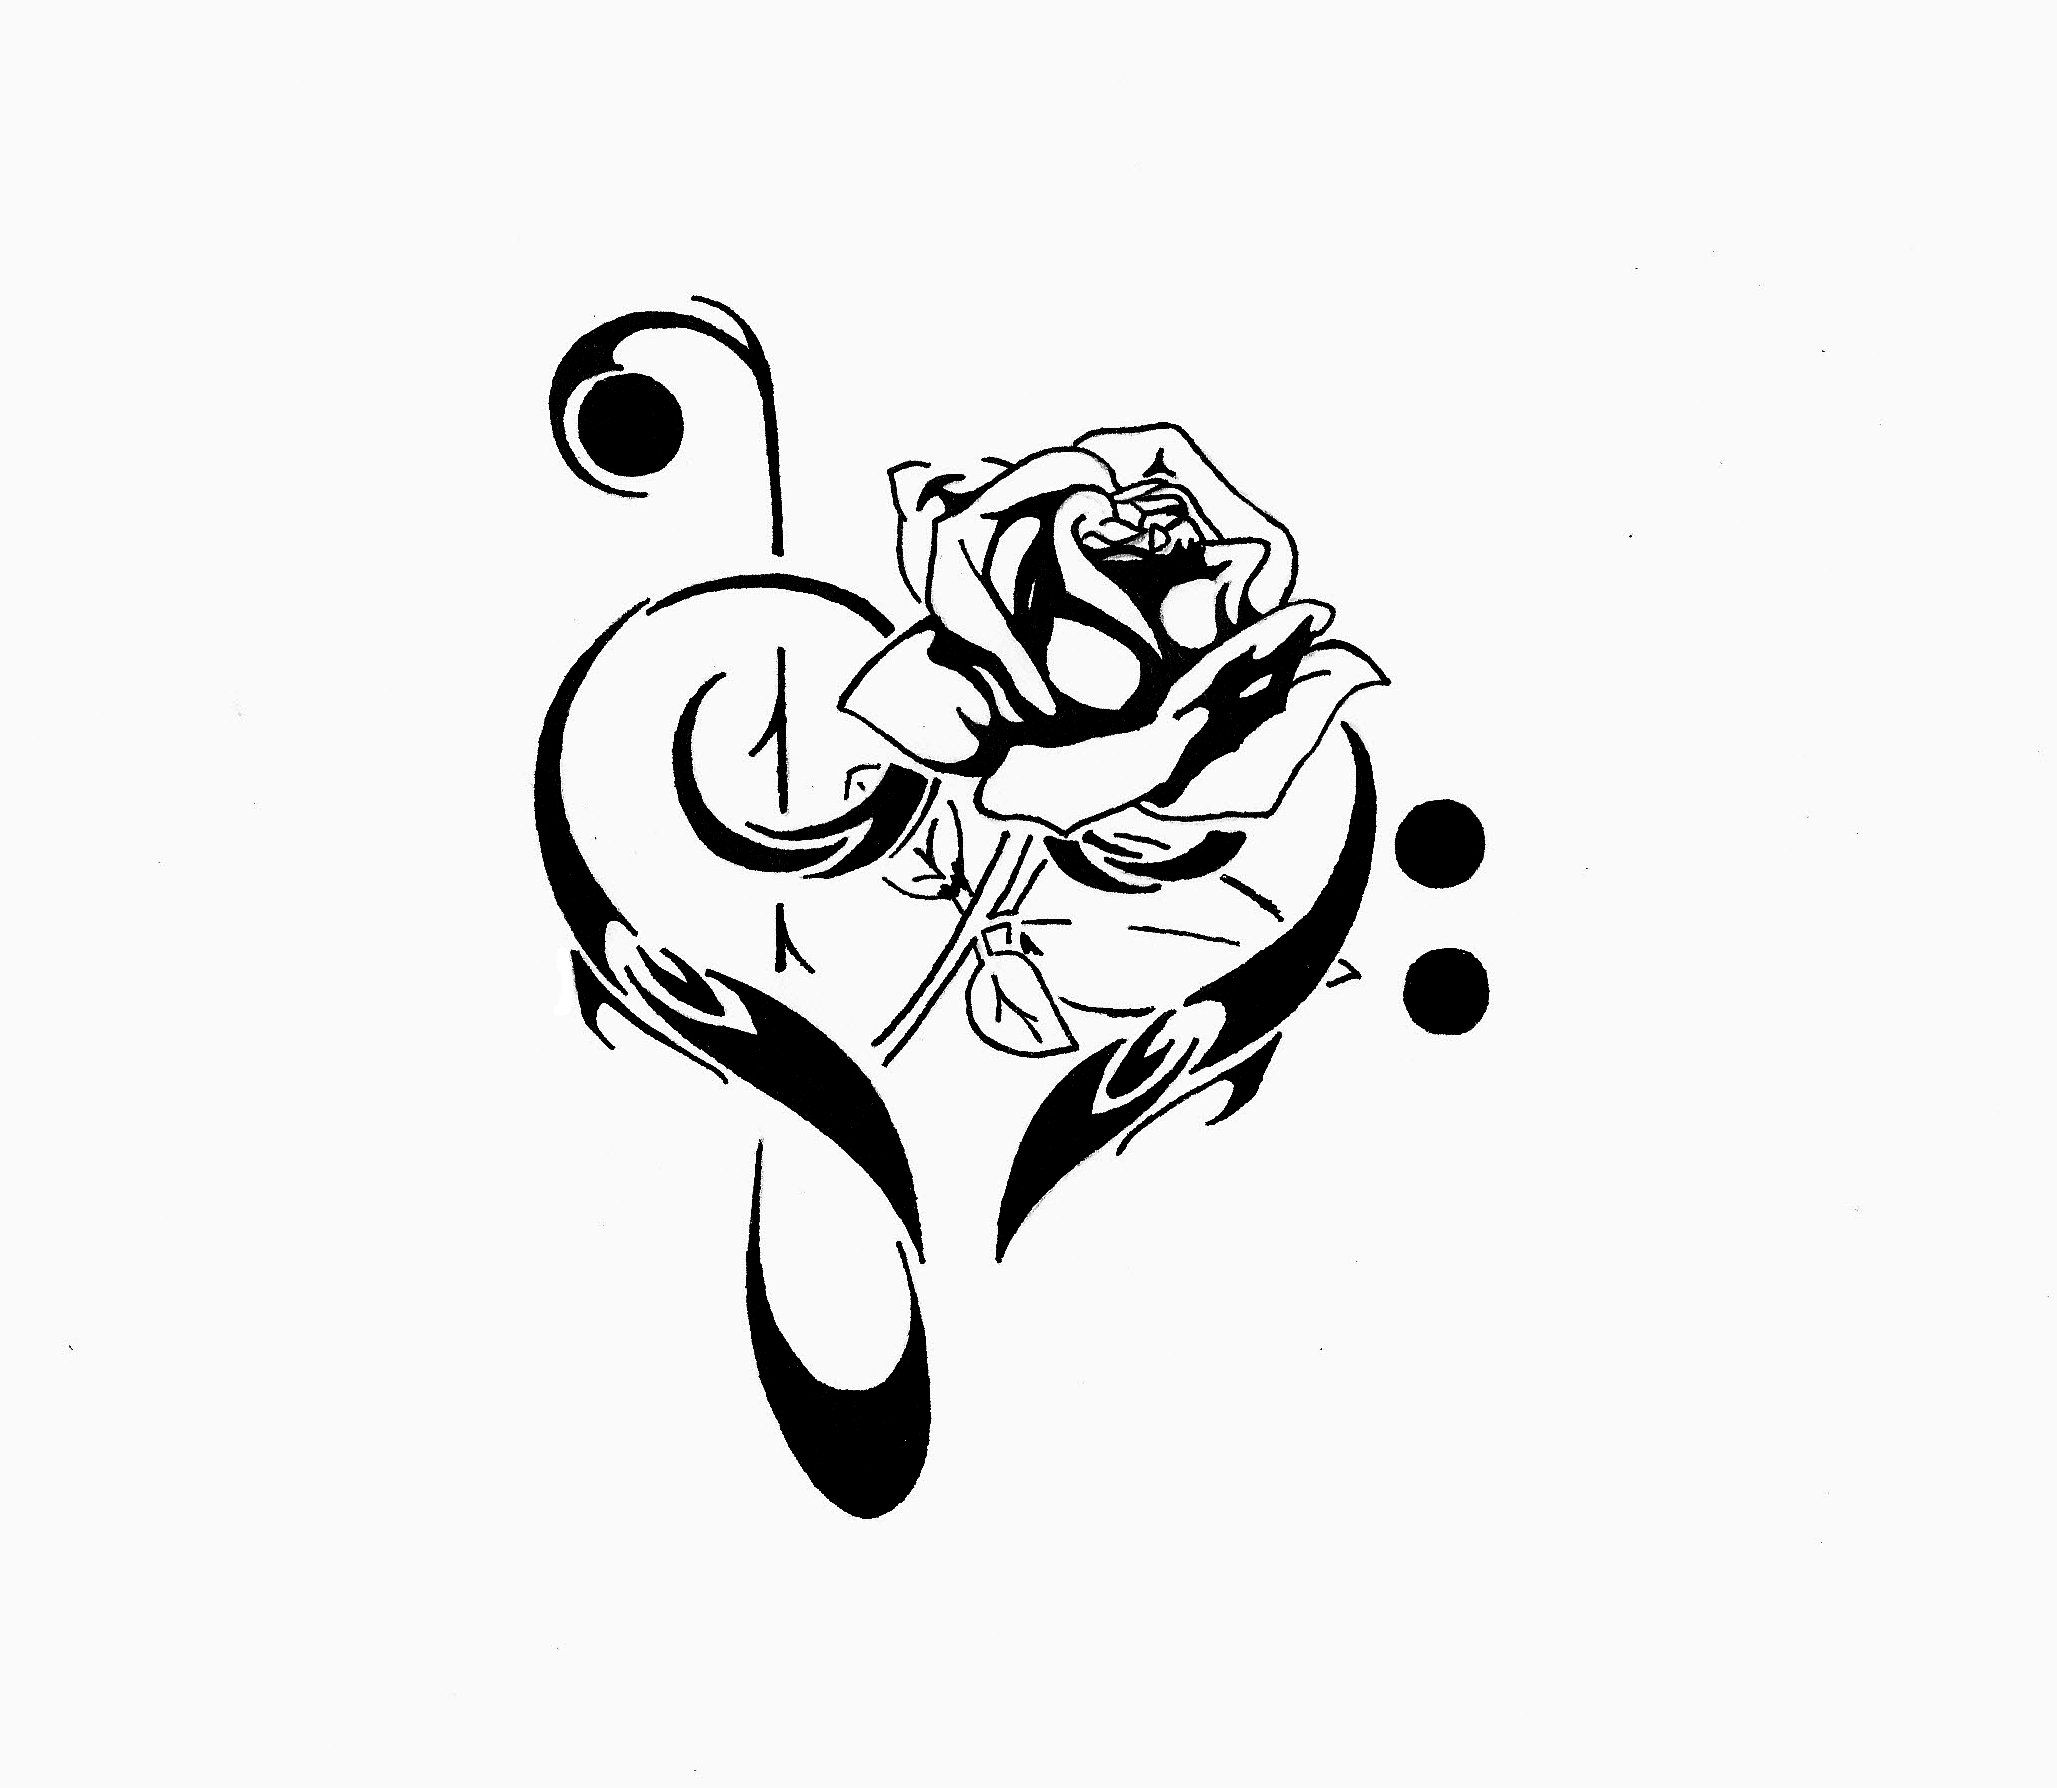 Mu music notes tattoo designs - Get Tattoos Small Ones One Something Like This For Mary Lue And A Tiger Stepping On A Daisy For Nathaniel